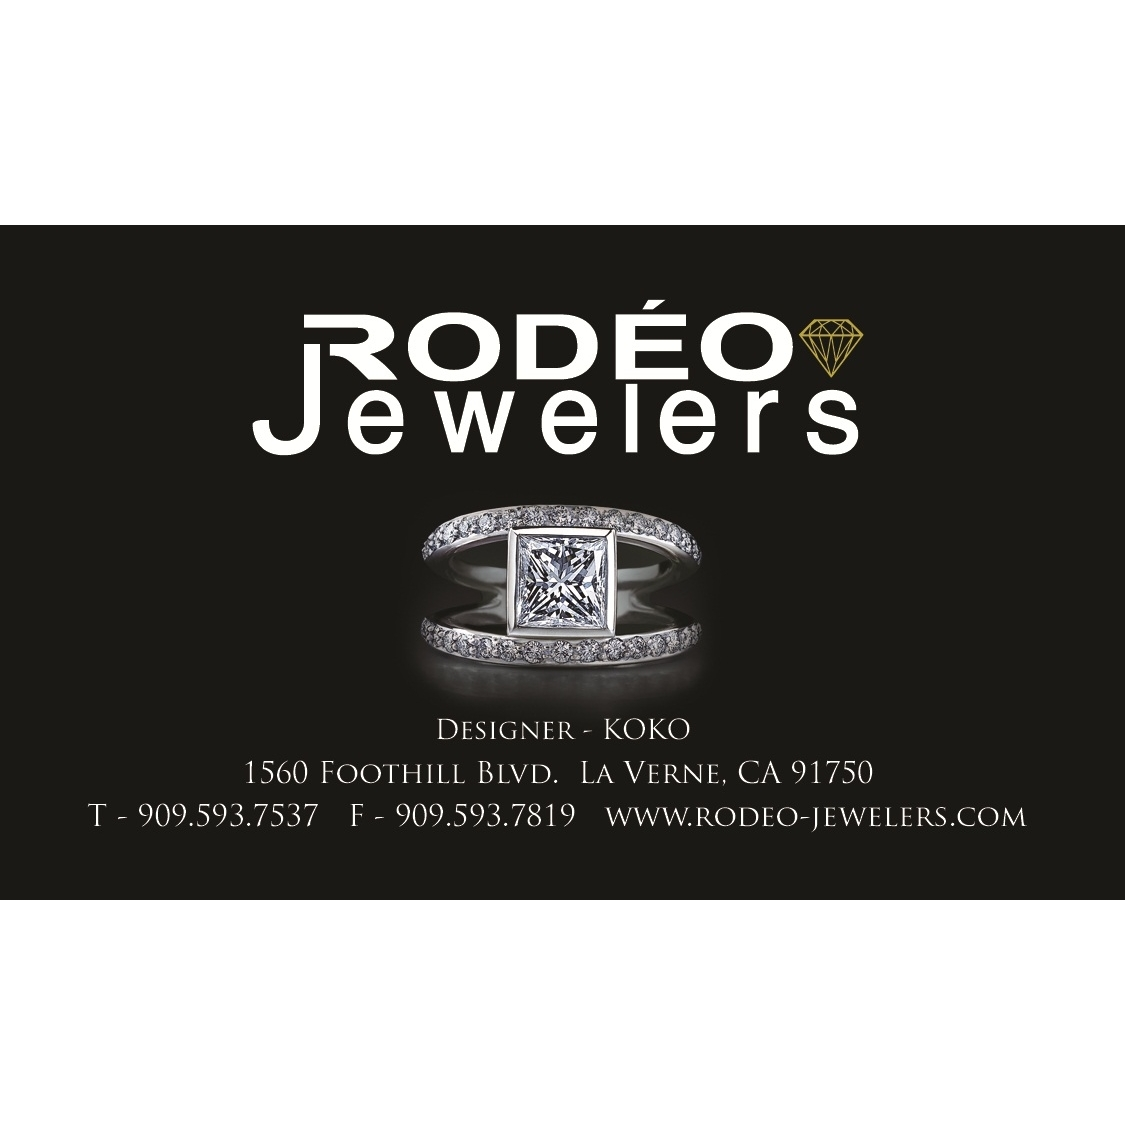 Rodeo jewelers coupons near me in la verne 8coupons for Local handmade jewelry near me